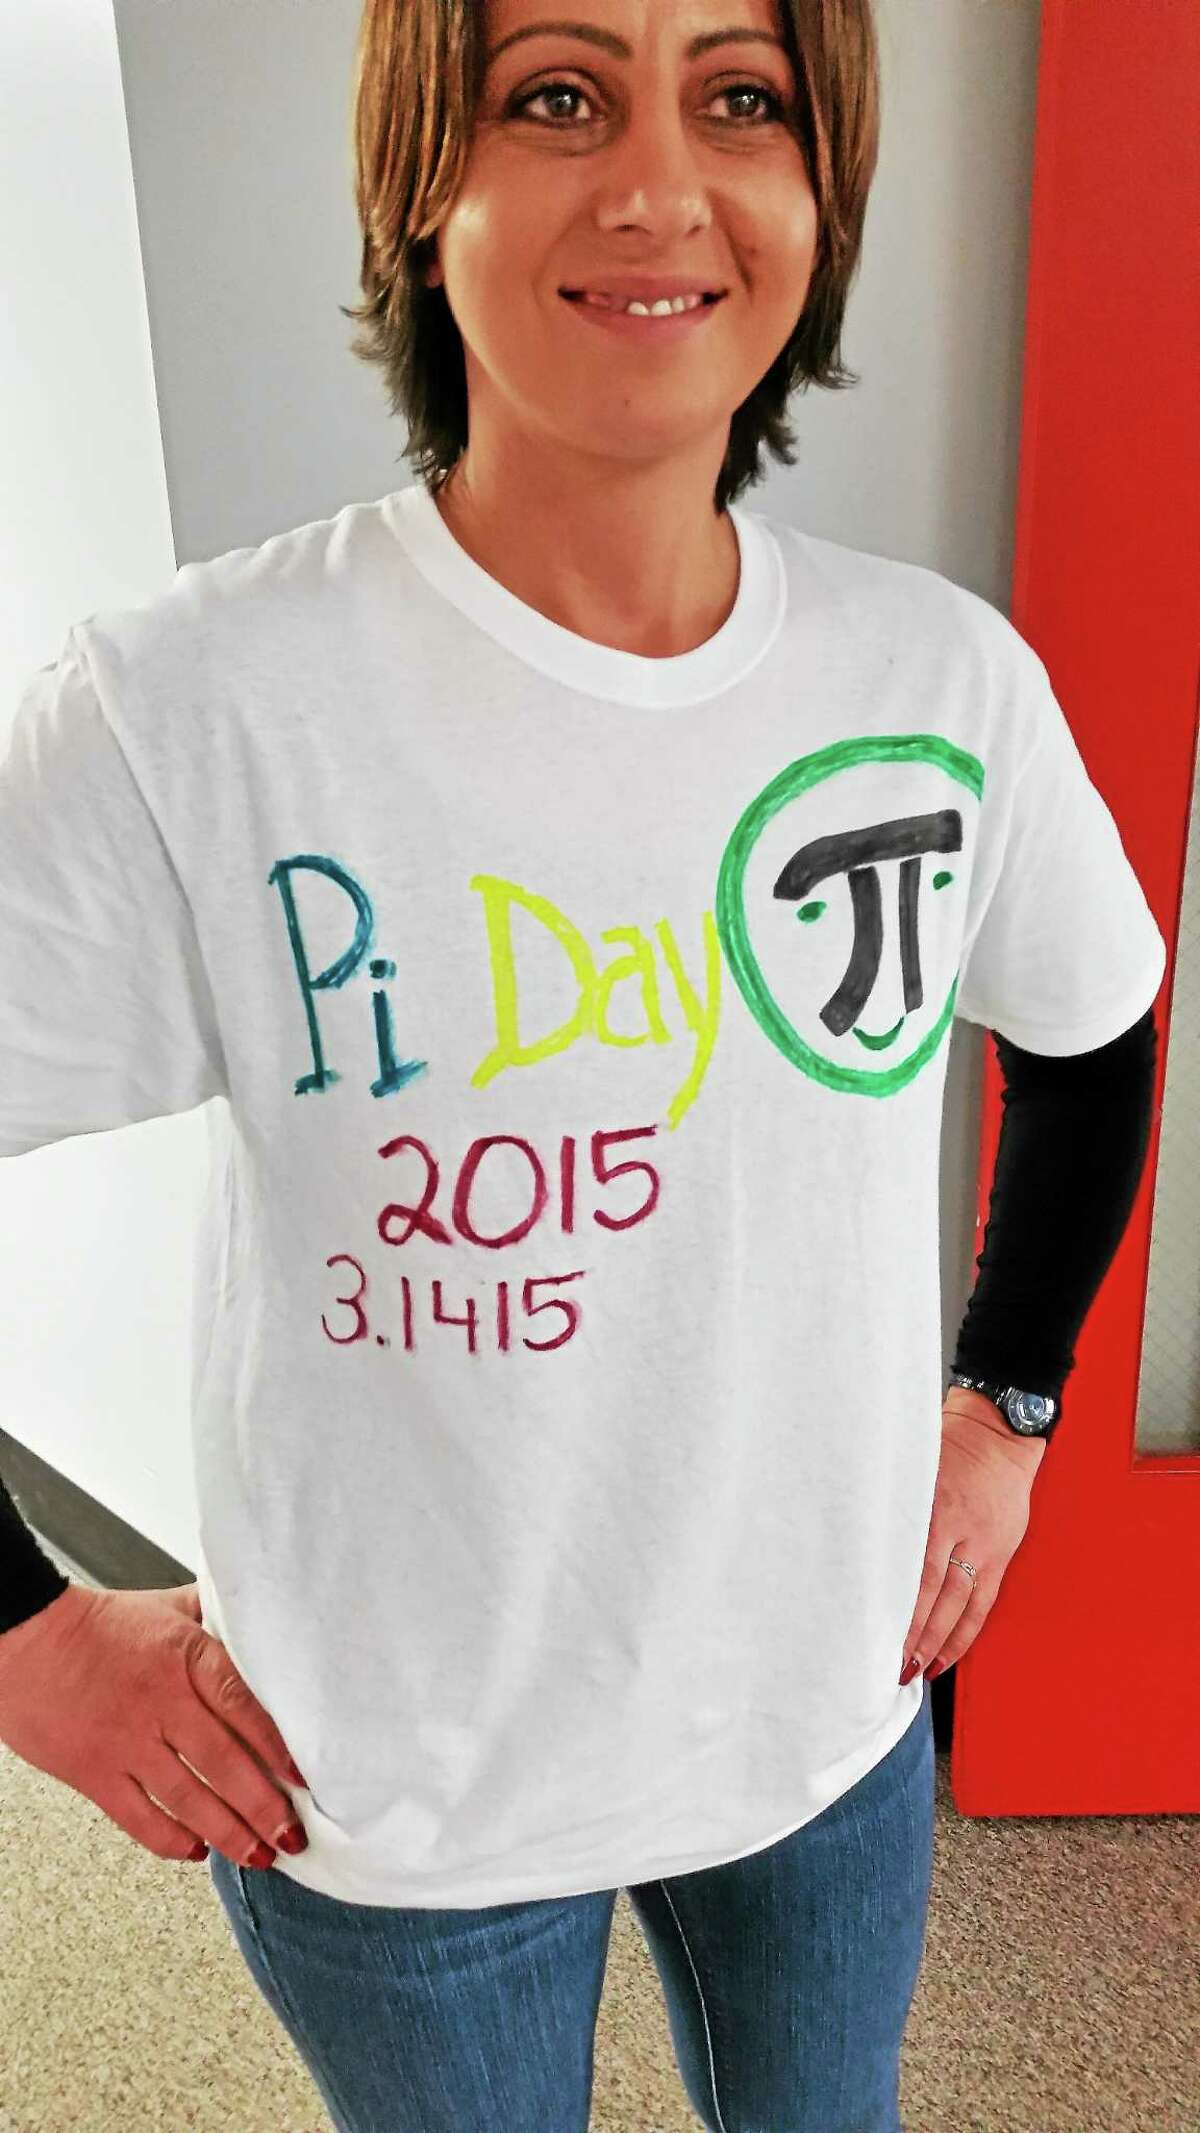 The infinity of Pi creates a fun challenge to memorize and calculate.